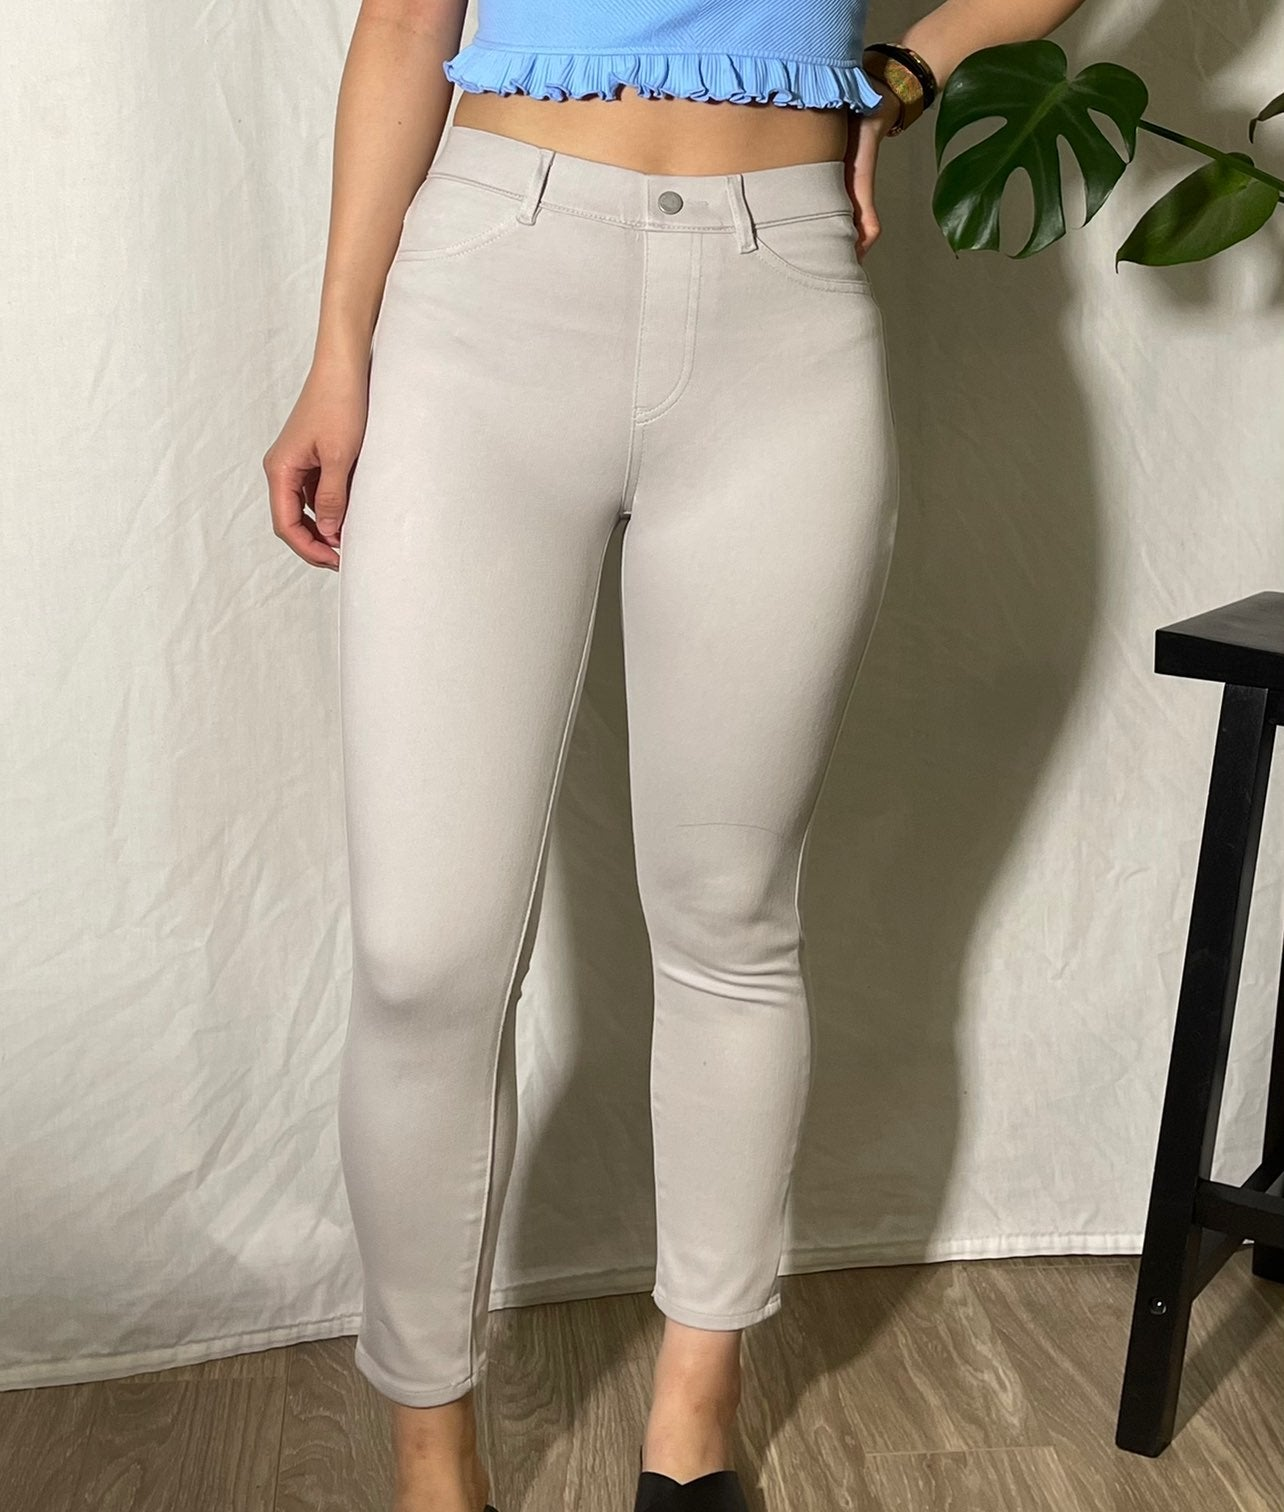 Grey stretchy cropped pants